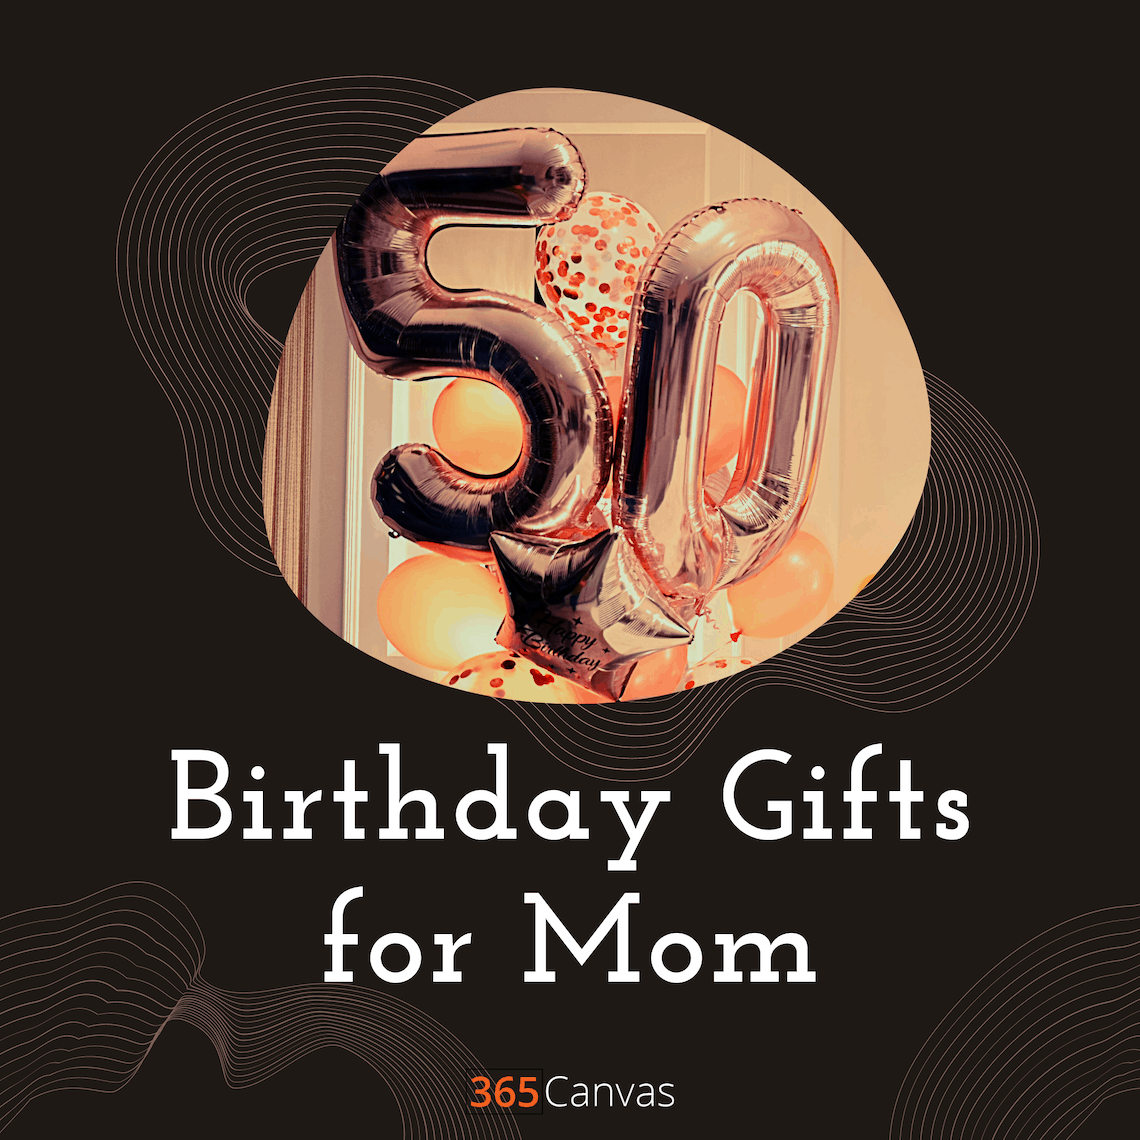 35+ Surprise Birthday Gift Ideas for Mom That She'll Adore in 2021